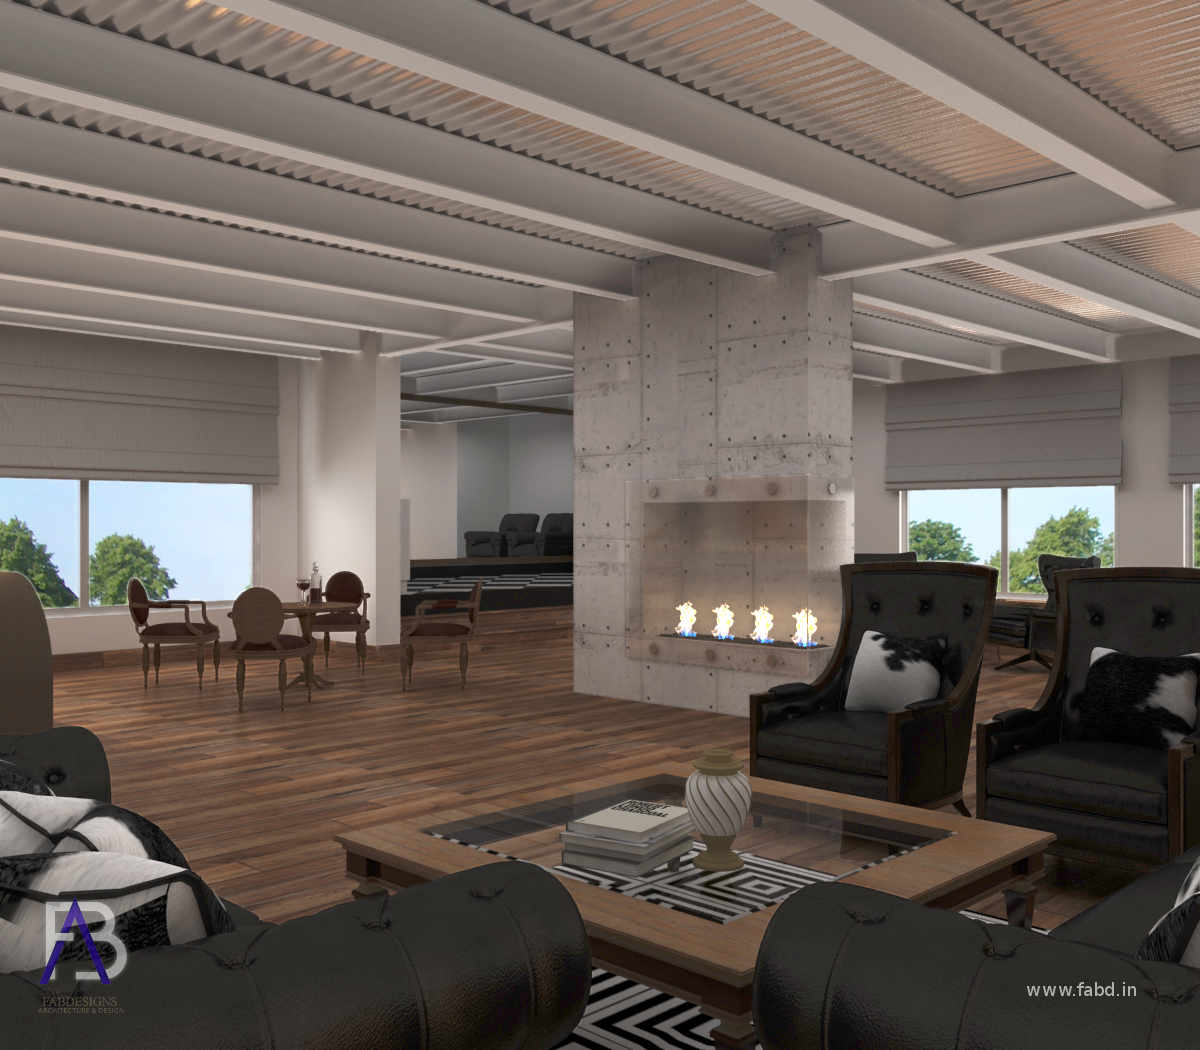 Lounge Area Interior Rendering View 2